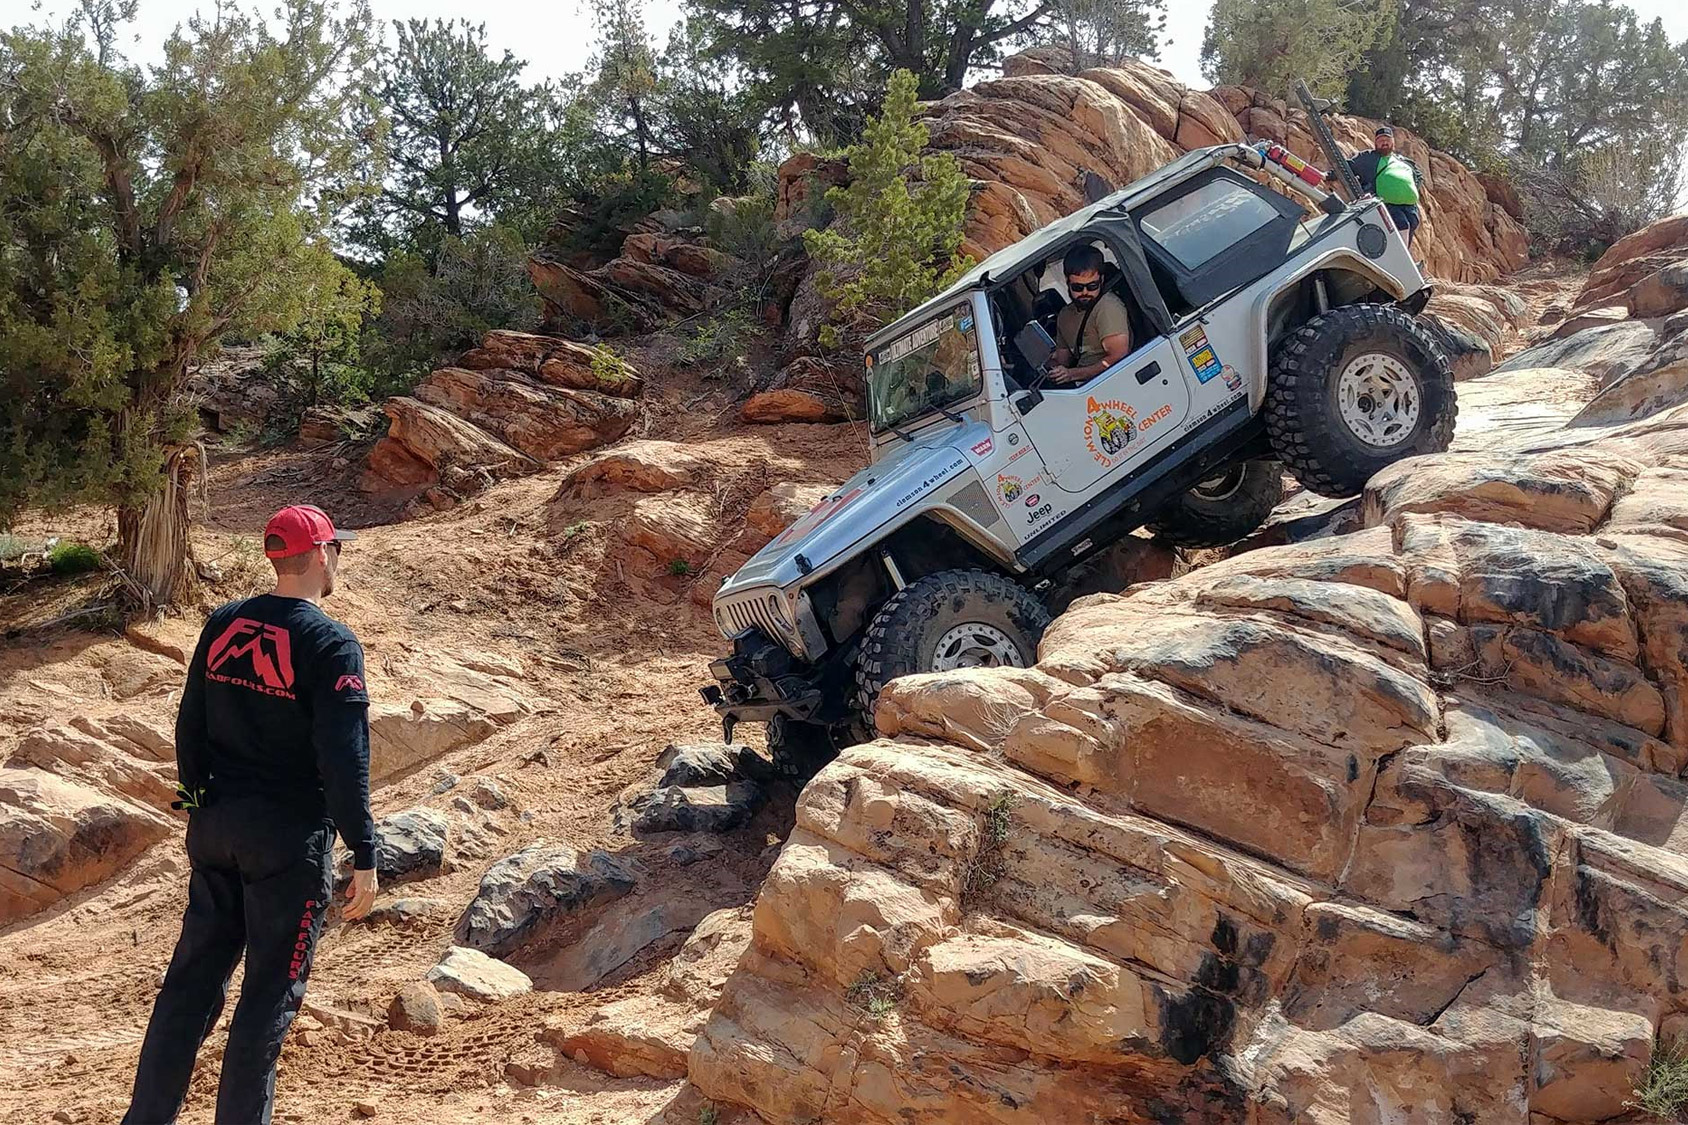 how to off-road - don't start on difficult trails